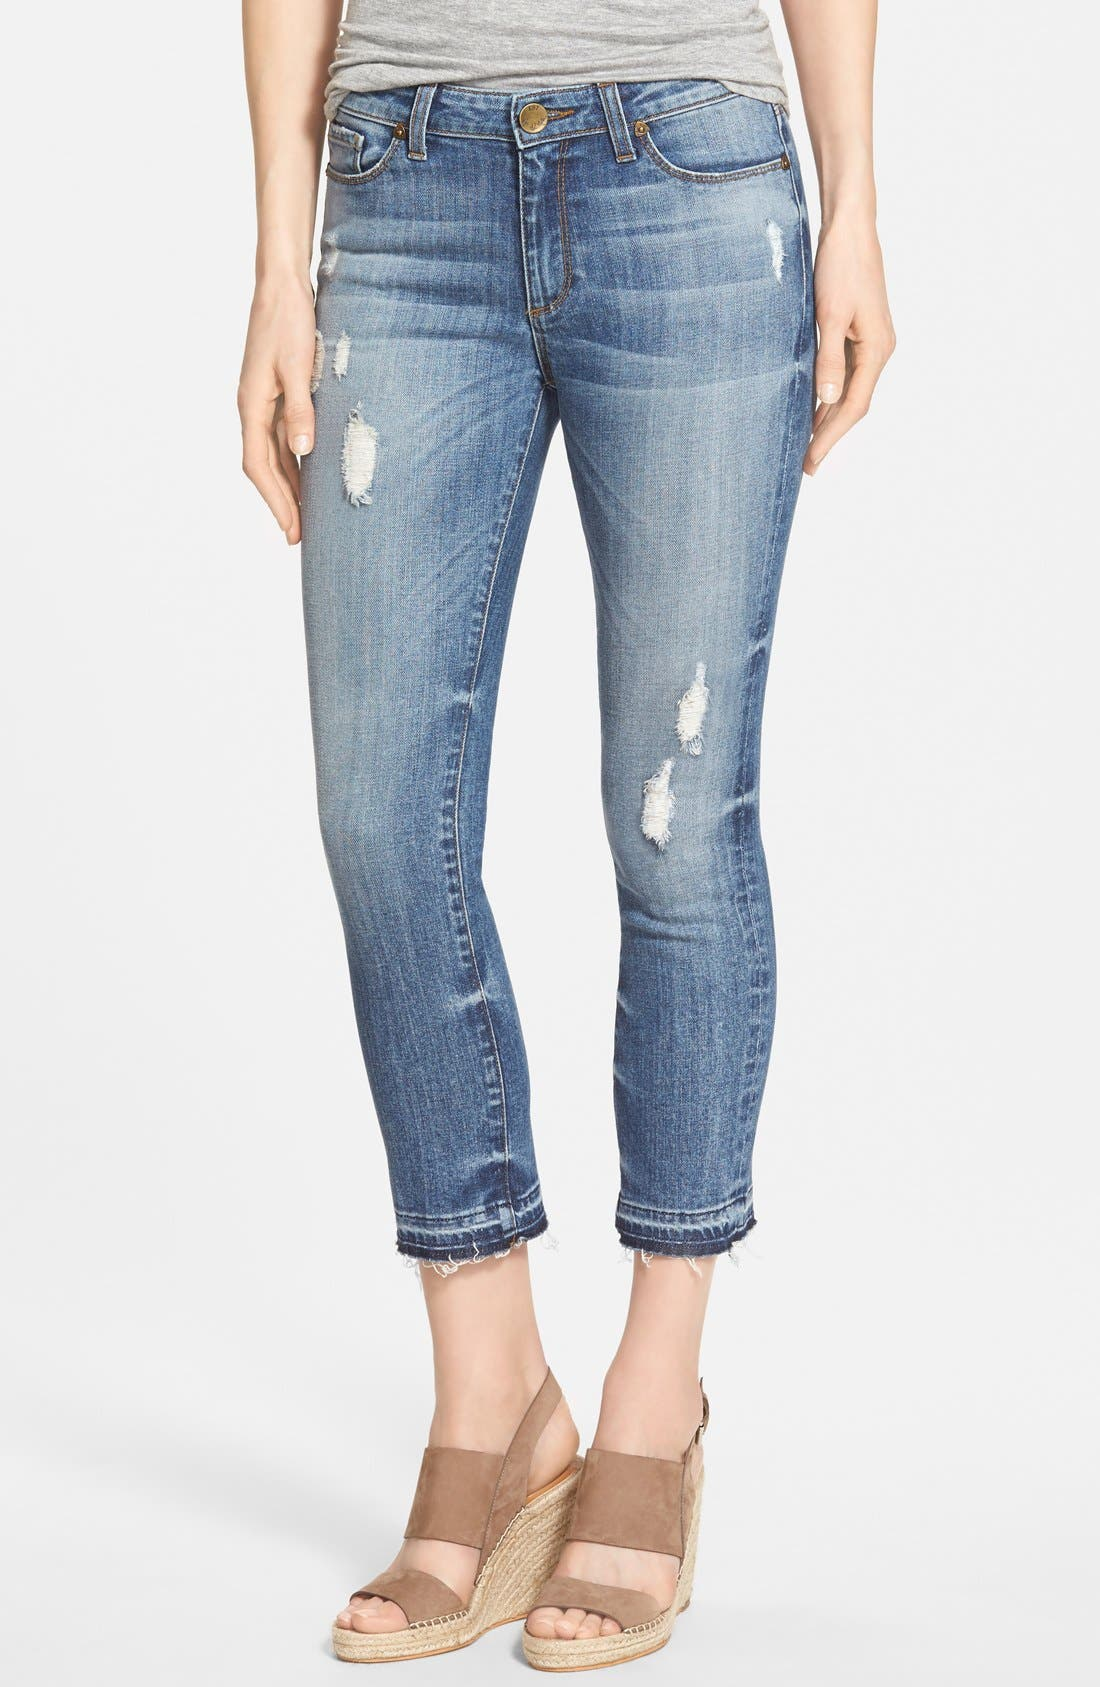 Main Image - KUT from the Kloth 'Reese' Distressed Stretch Ankle Straight Leg Jeans (Fantastic)